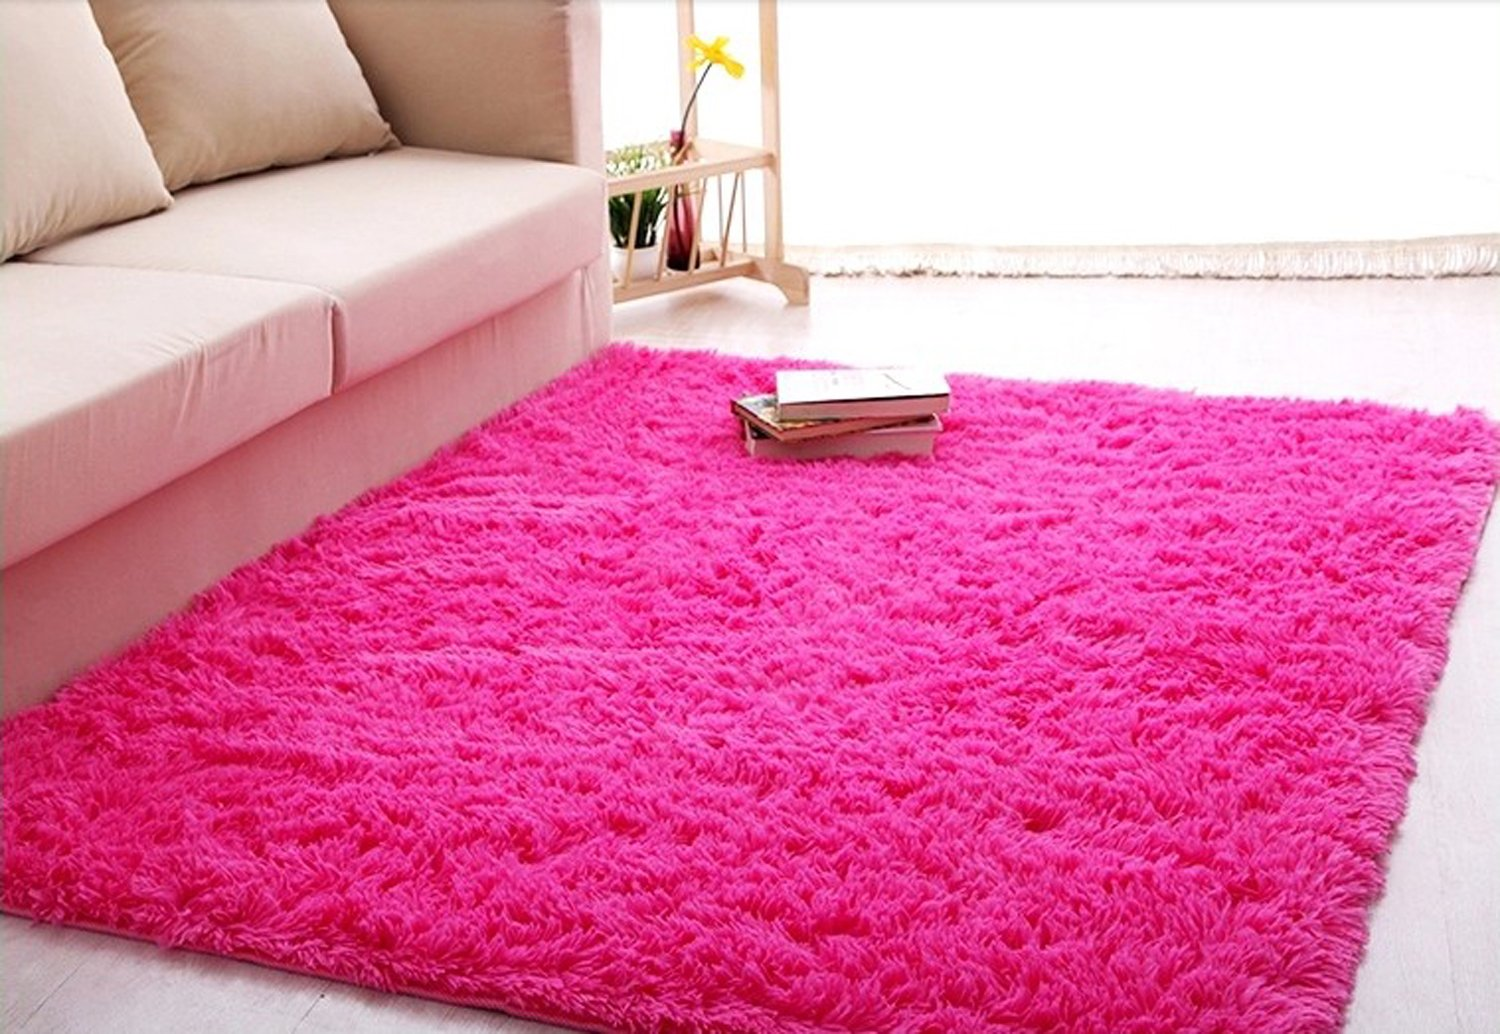 girls bedroom rug. Amazon com  Igirls Shaggy Daughter s Room ultra Soft Area Rugs Living Carpet Bedroom Rug Princess Girls Home Decorator Floor Blanket Hot Pink